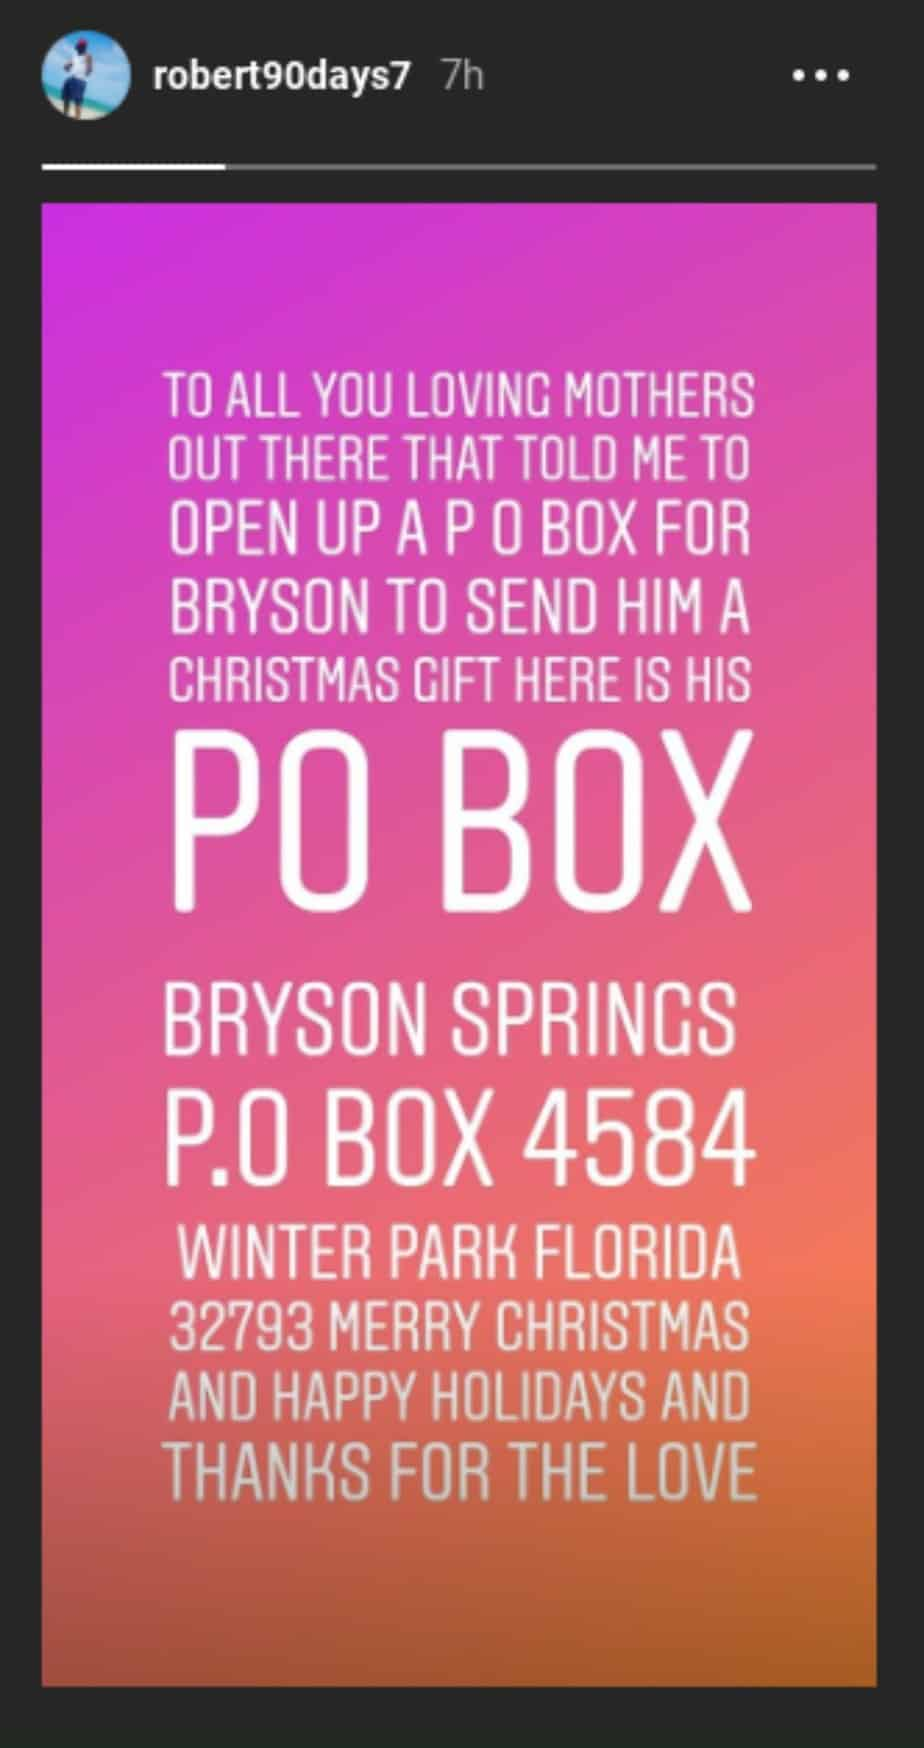 Robert shares his address so 90 Day Fiance fans can buy Bryson presents